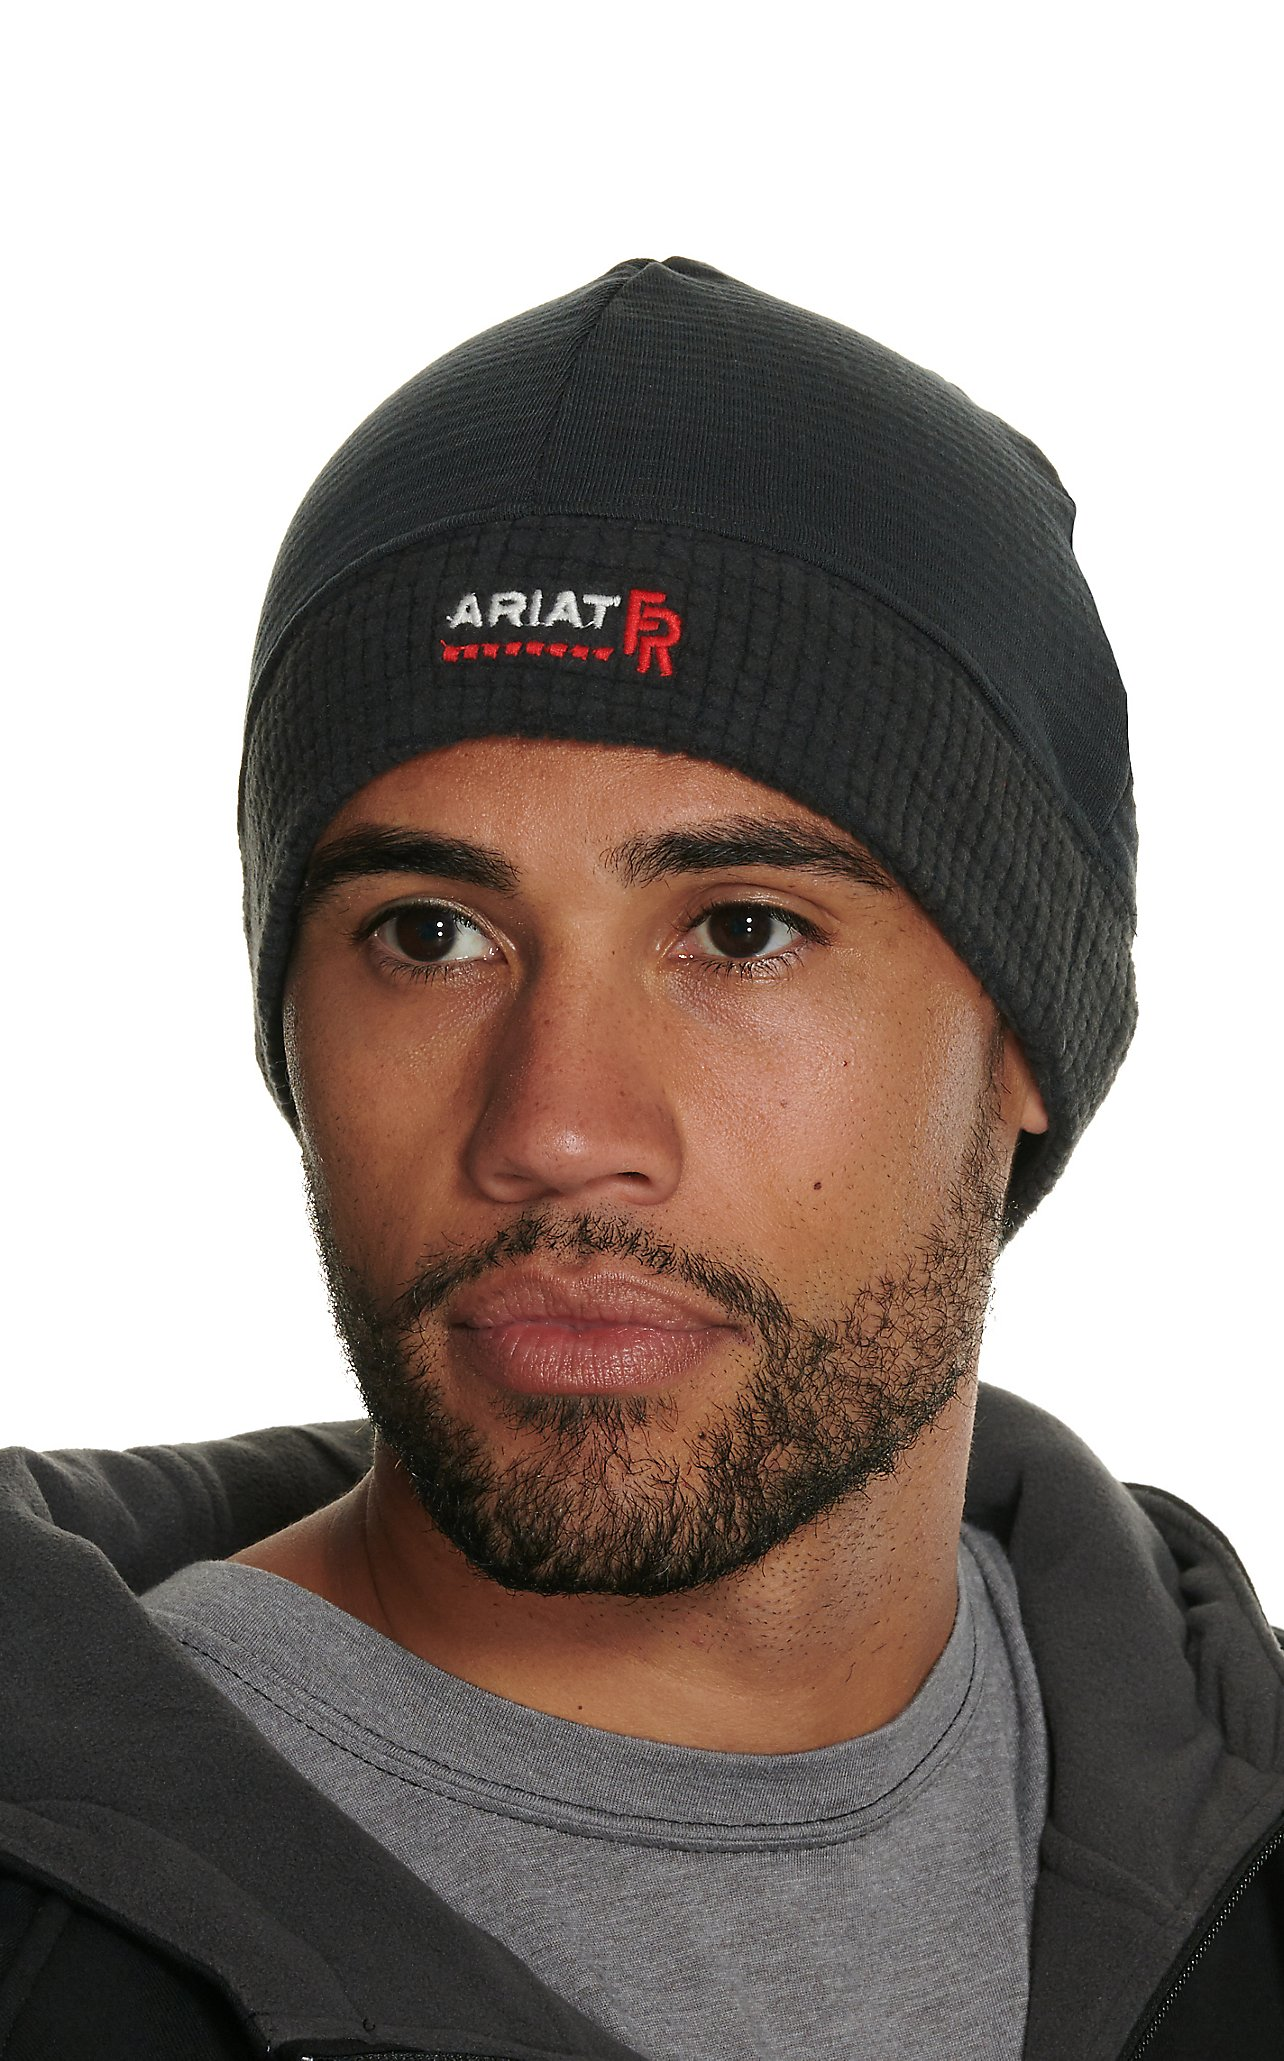 ... Logo and White Mesh Snap Back Cap.  32.00  27.20 · Ariat Work Fire  Resistant Polartec Black Beanie 9ab01c10cf40